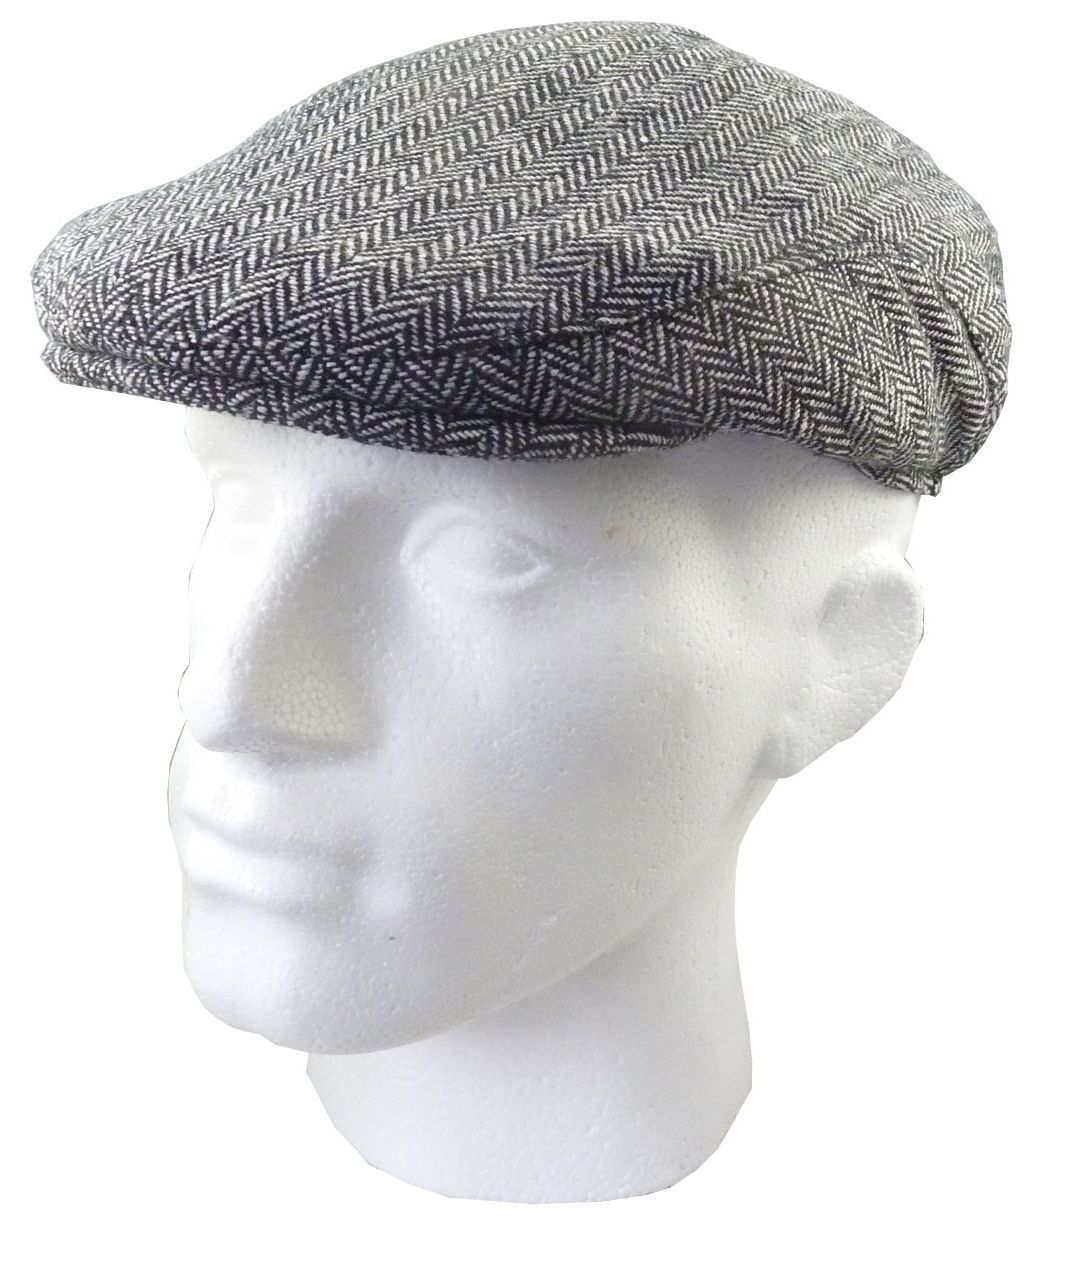 b07d0d1c3 Flat Cap - Classic Tweed Wool Black Herrigbone Hat